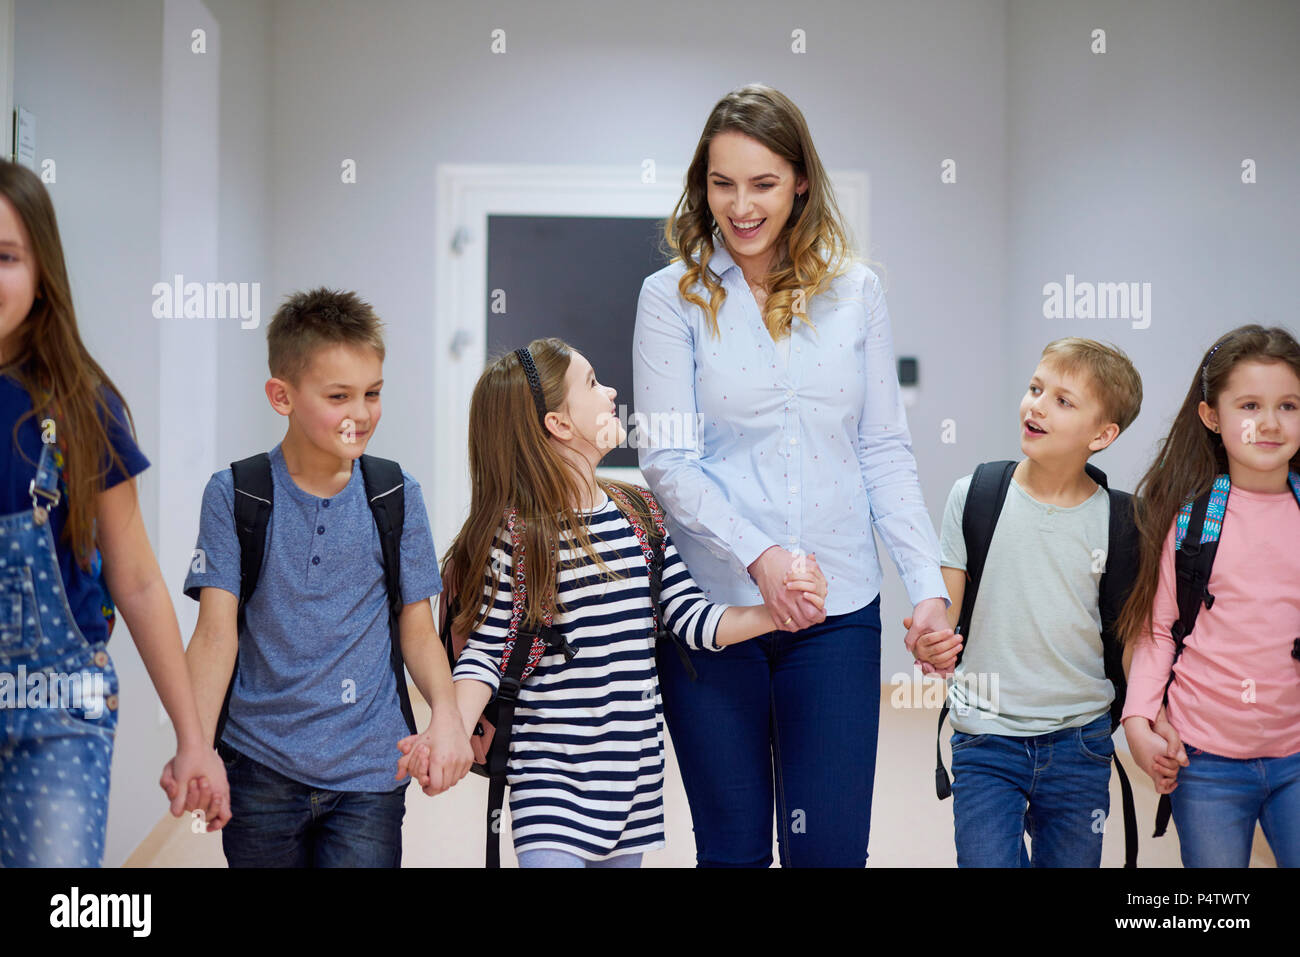 Smiling pupils and teacher walking hand in hand on corridor in school - Stock Image